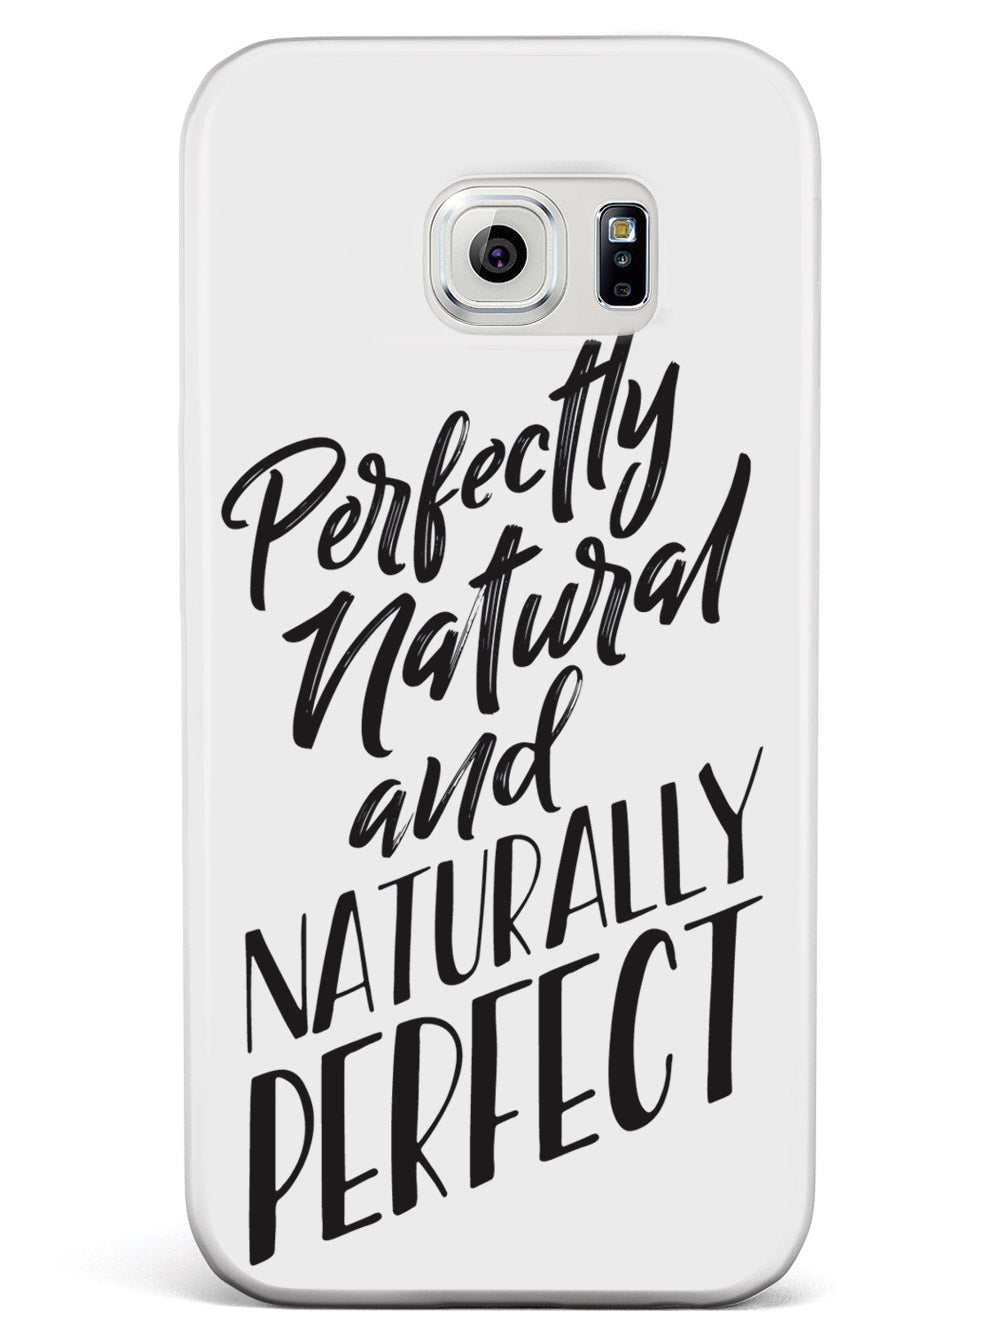 Perfectly Natural and Naturally Perfect - White Case